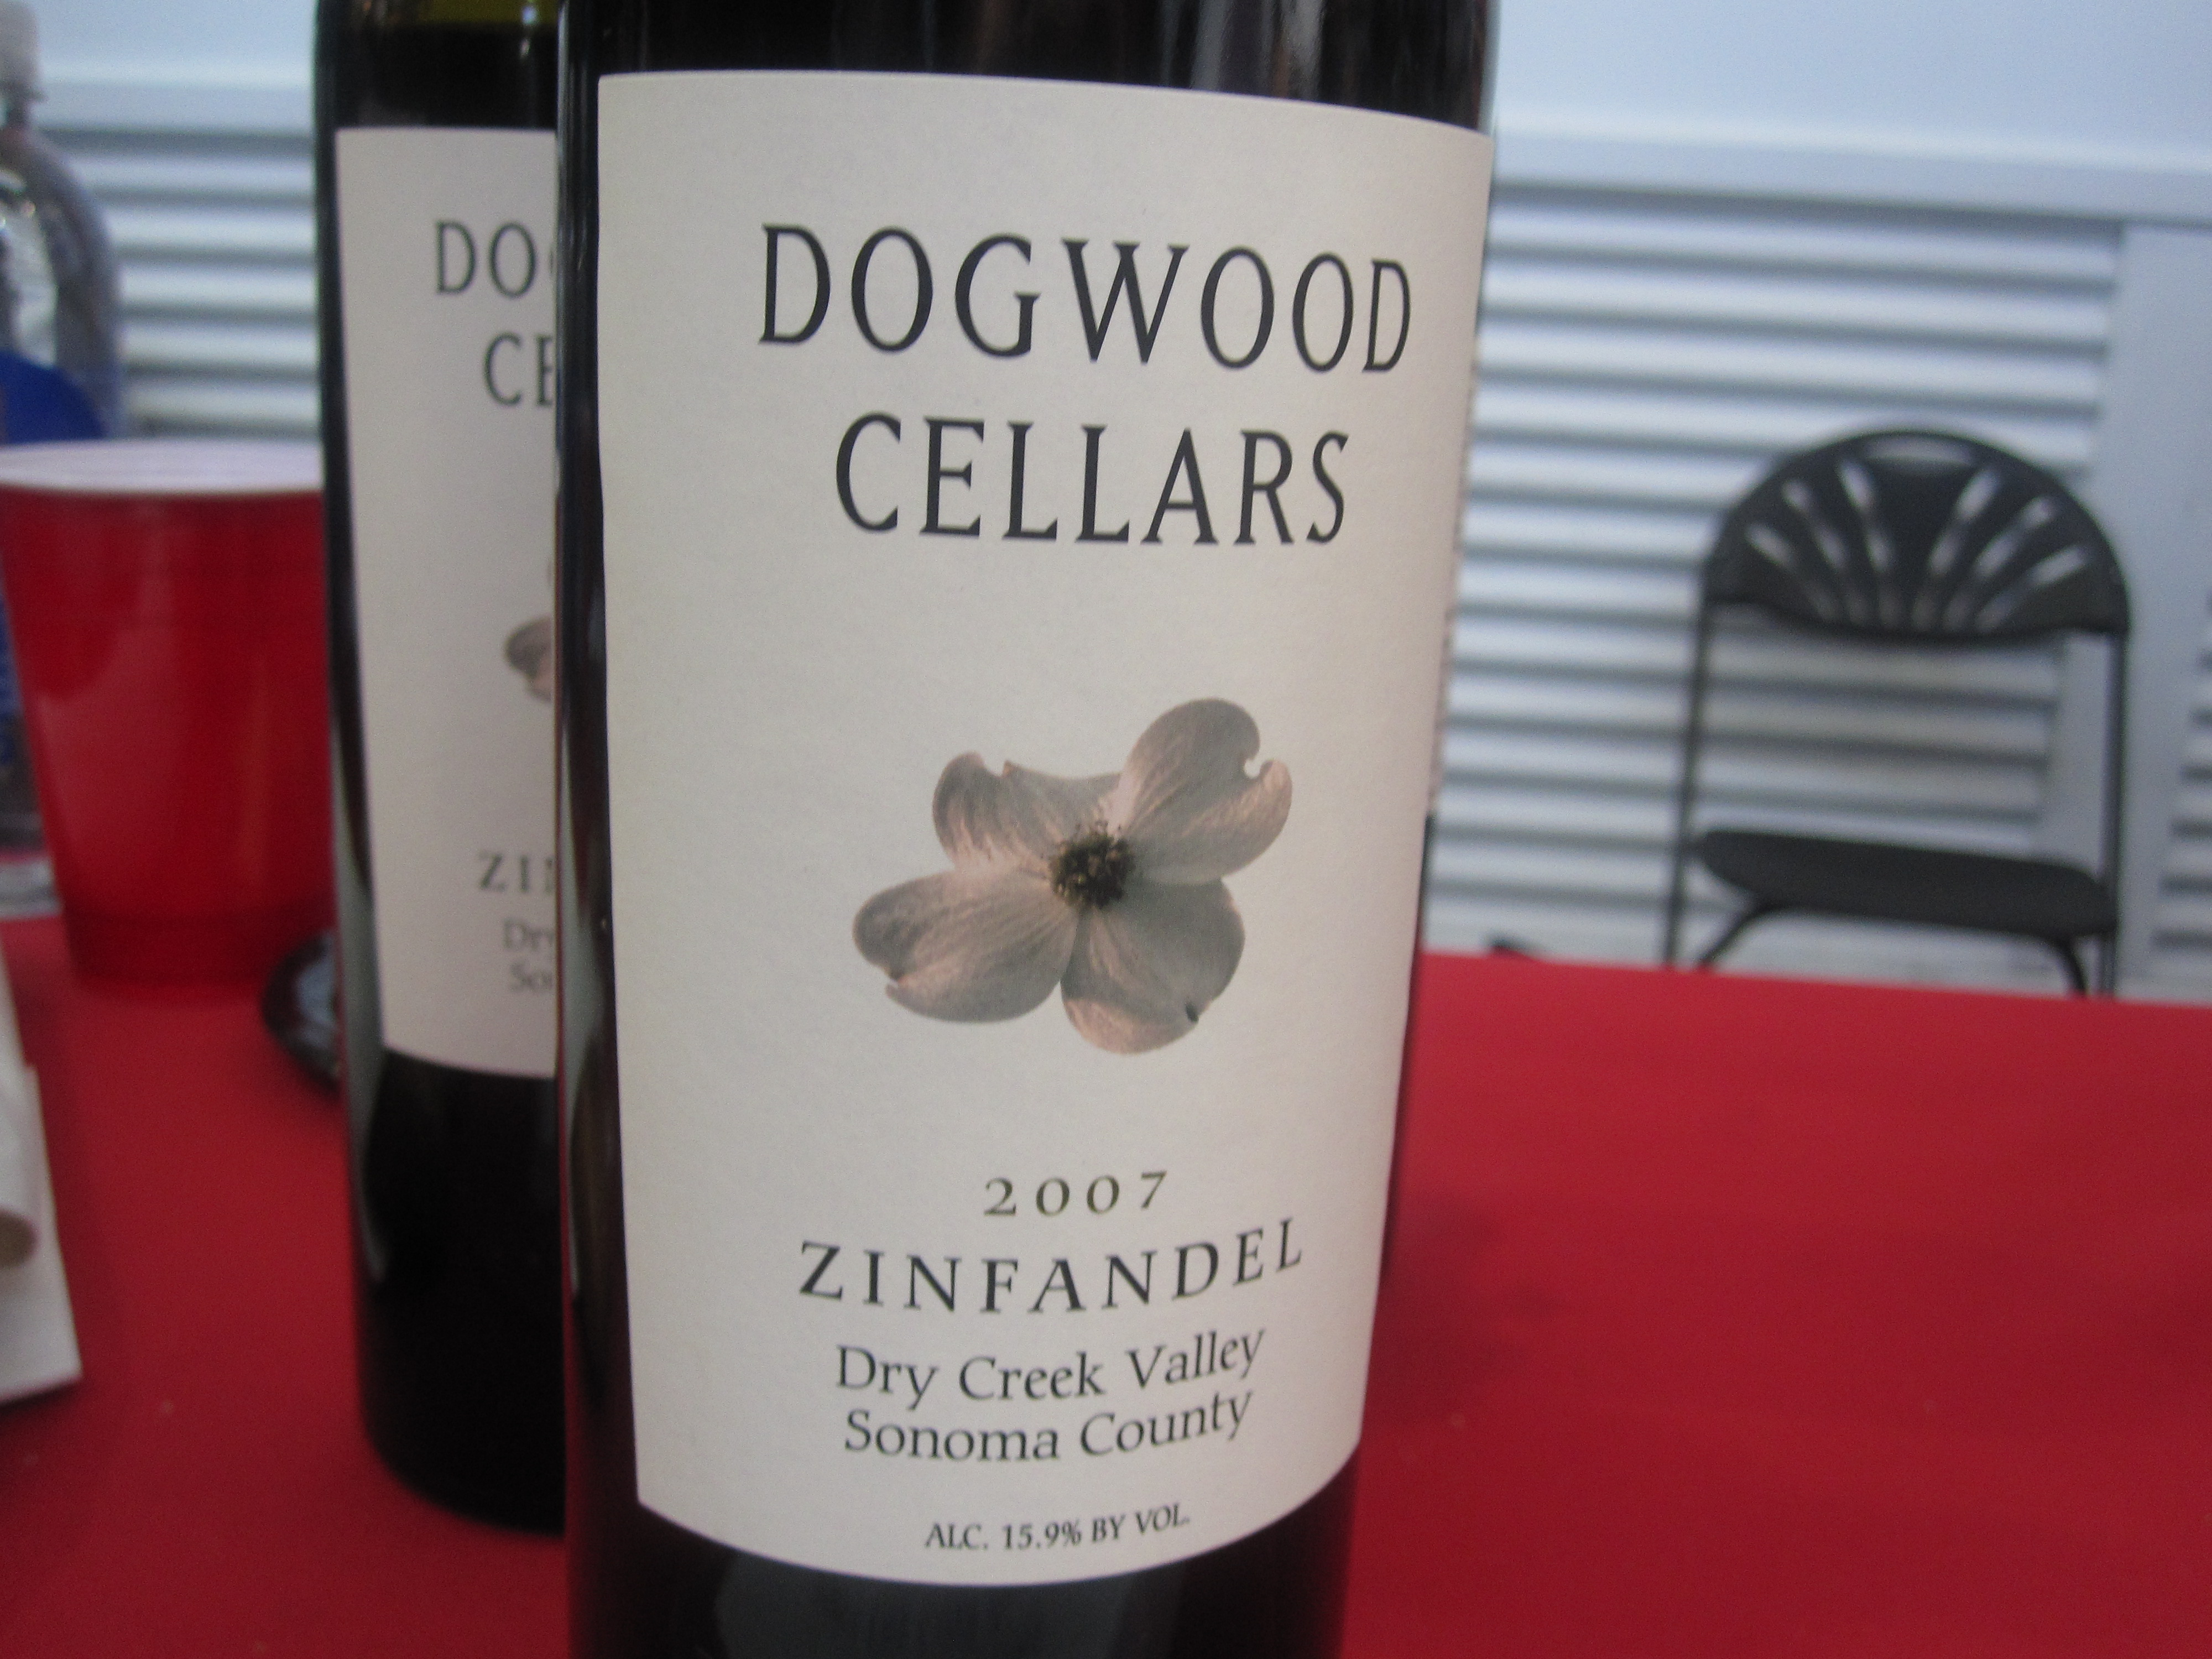 Dogwood Cellars' handsome pourer and smooth, rich mouth feel made me love this wine.